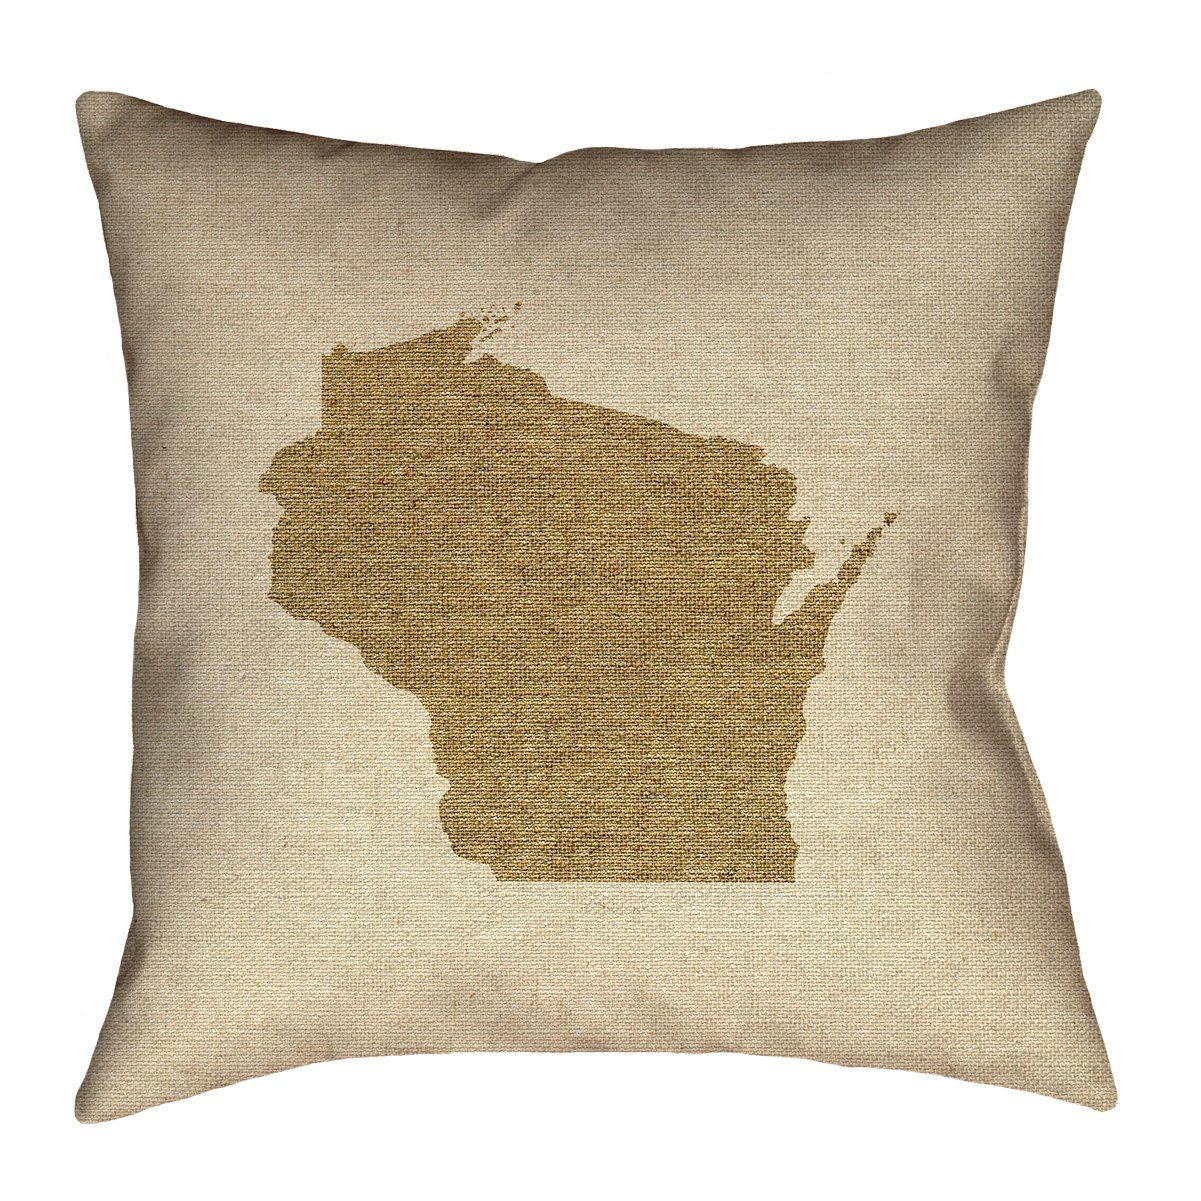 ArtVerse Katelyn Smith Wisconsin Canvas 28' x 28' Floor Pillows Double Sided Print with Concealed Zipper & Insert SMI435F2828L